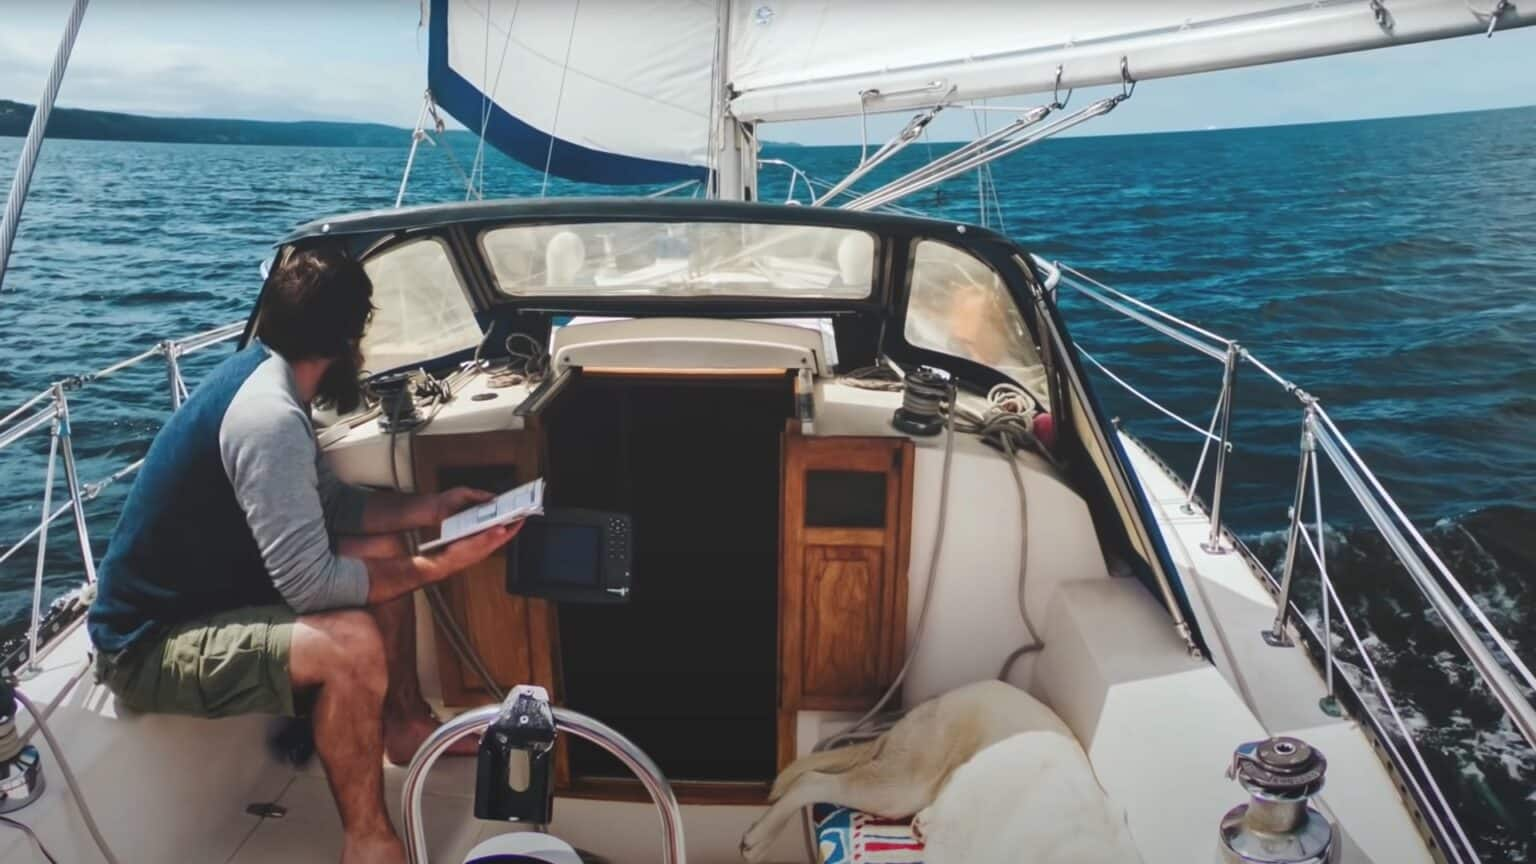 Eco friendly sailing living onboard